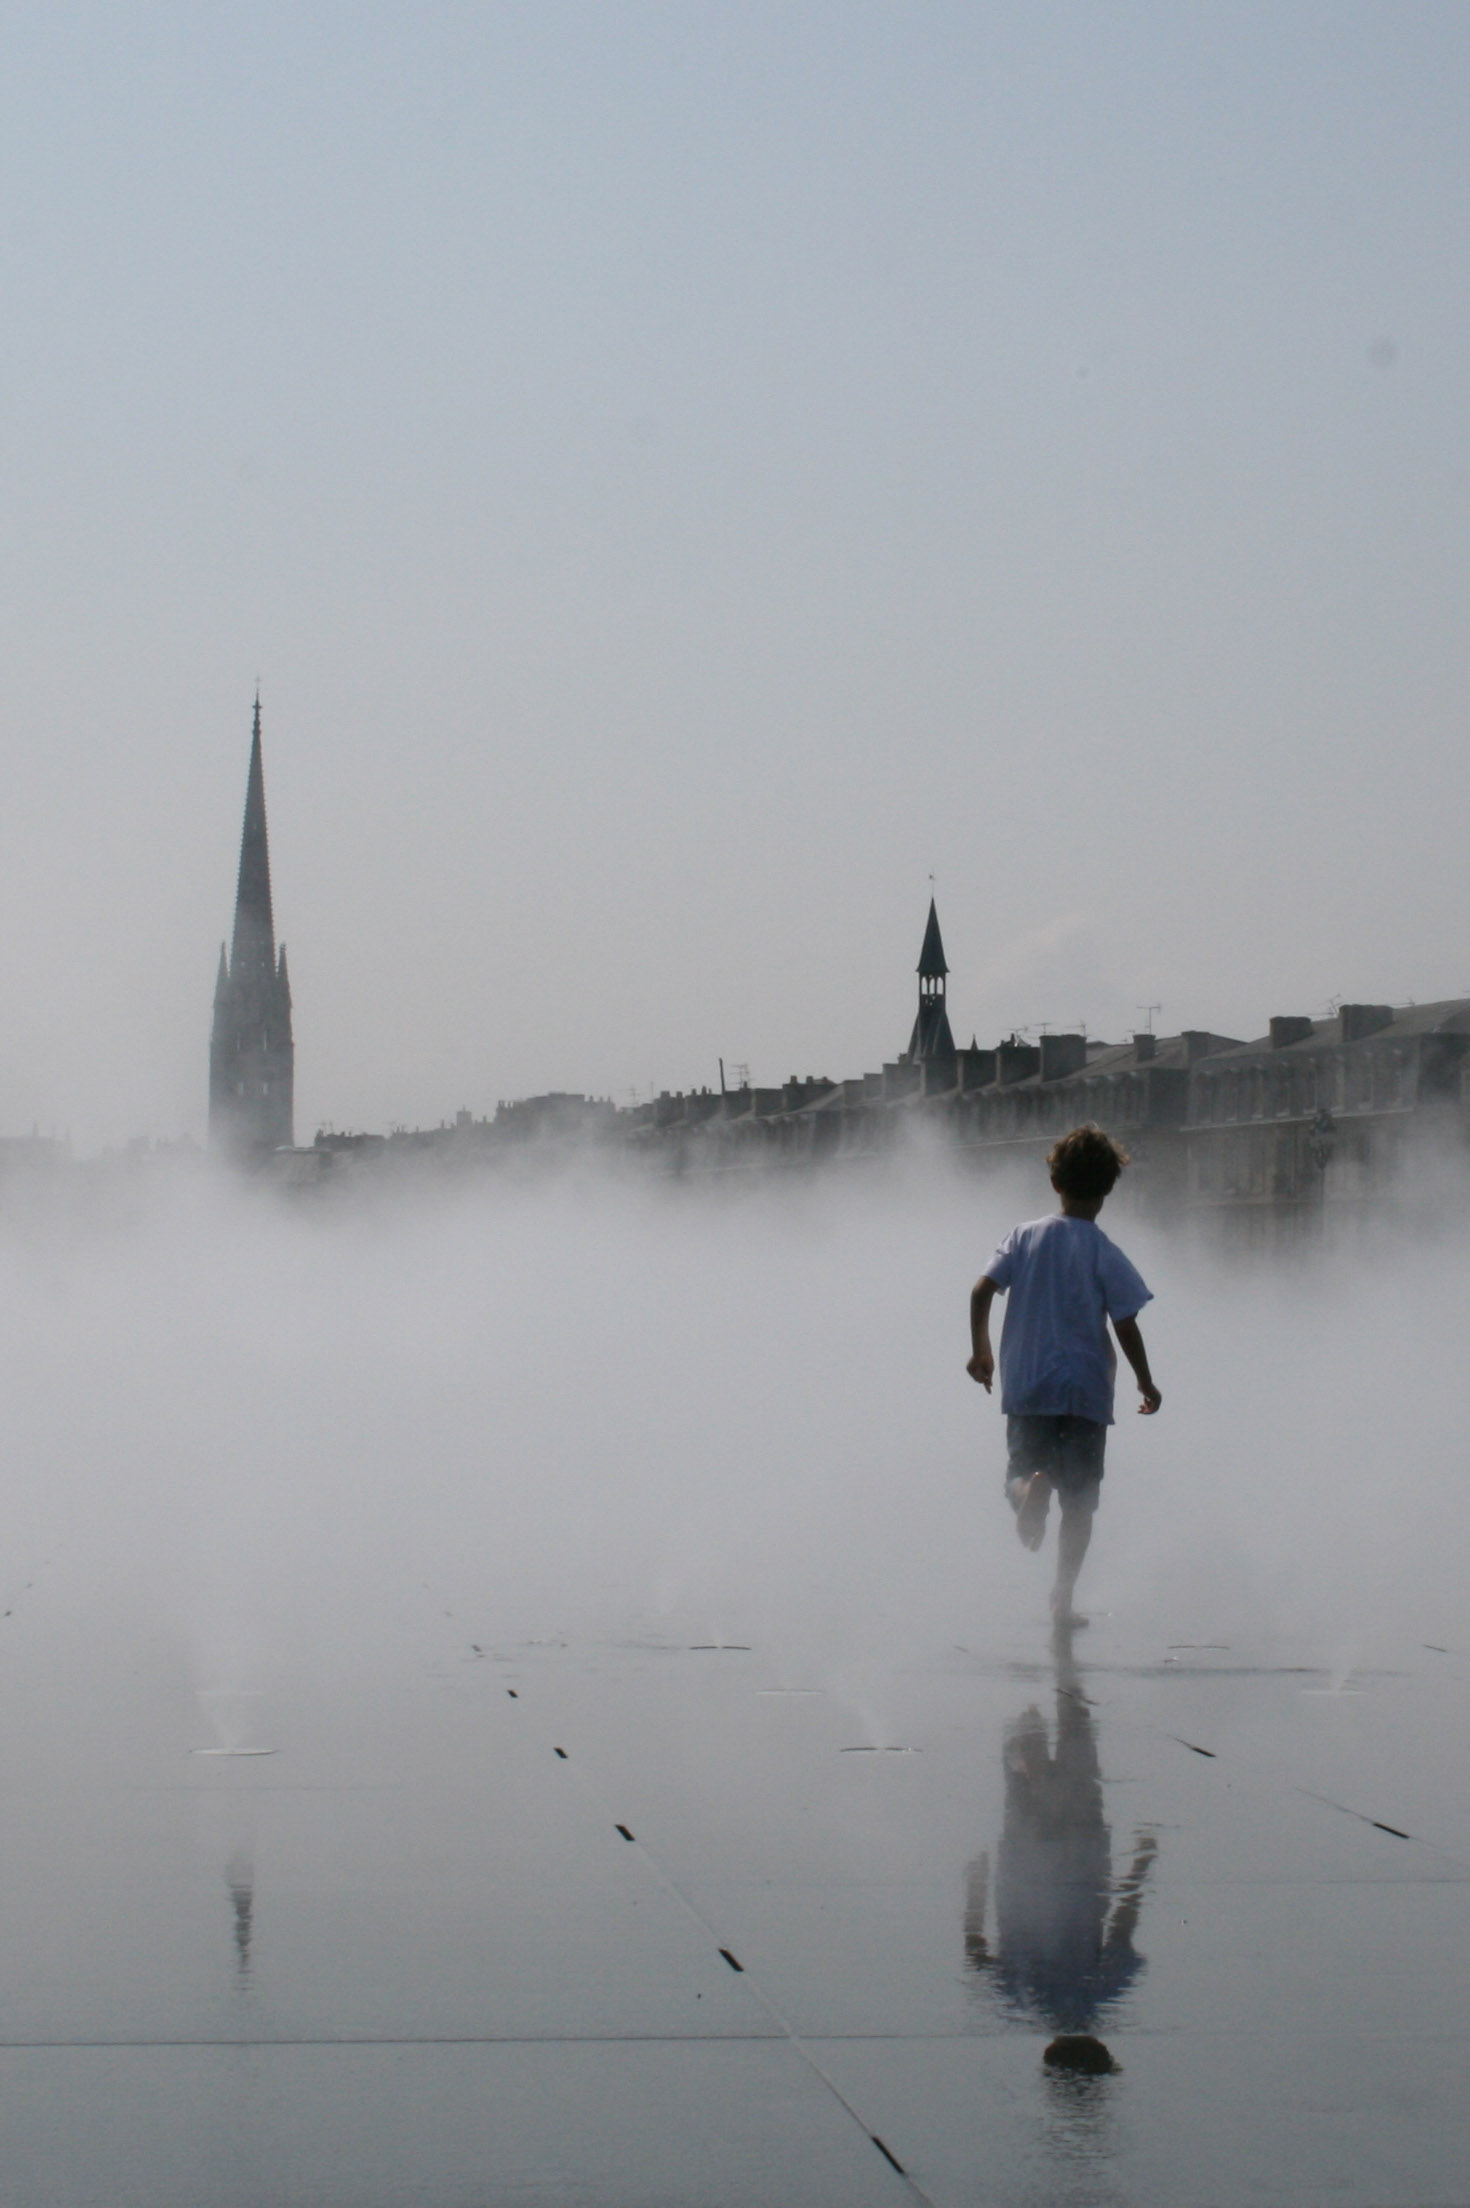 Children in the Mist